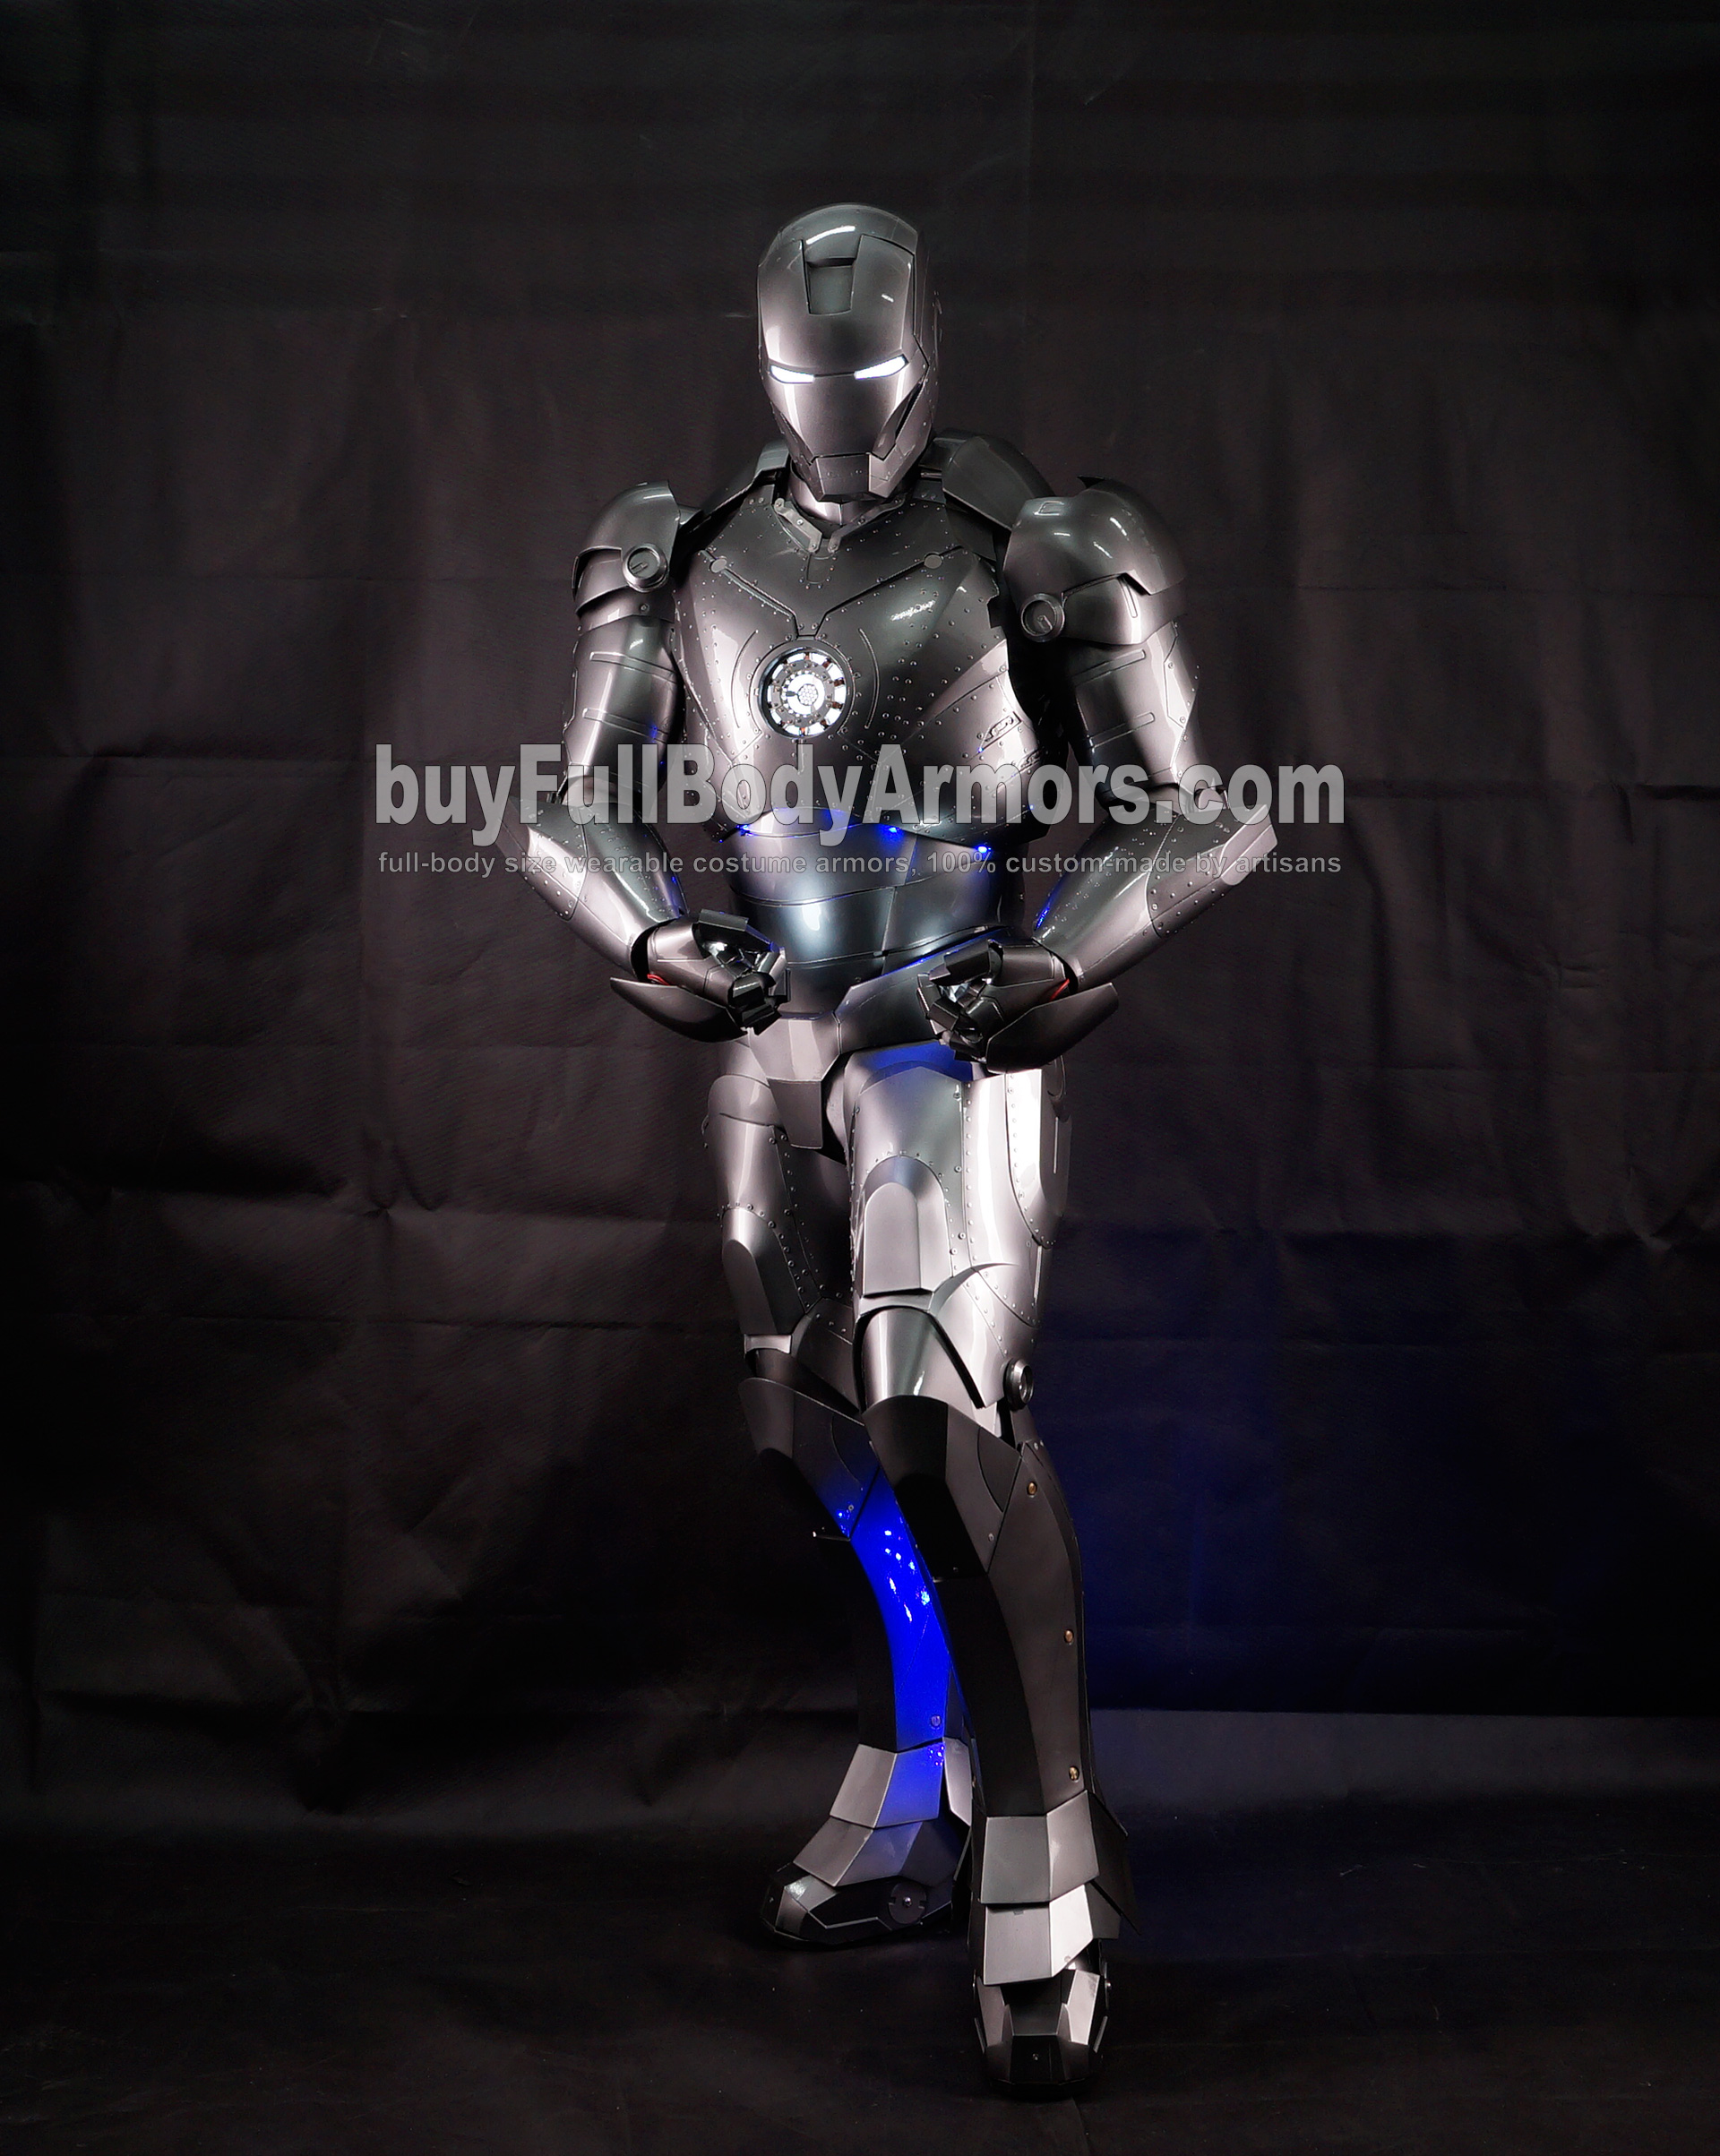 High Definition Photos of the Wearable Iron Man Mark 2 II Armor Costume Suit 8